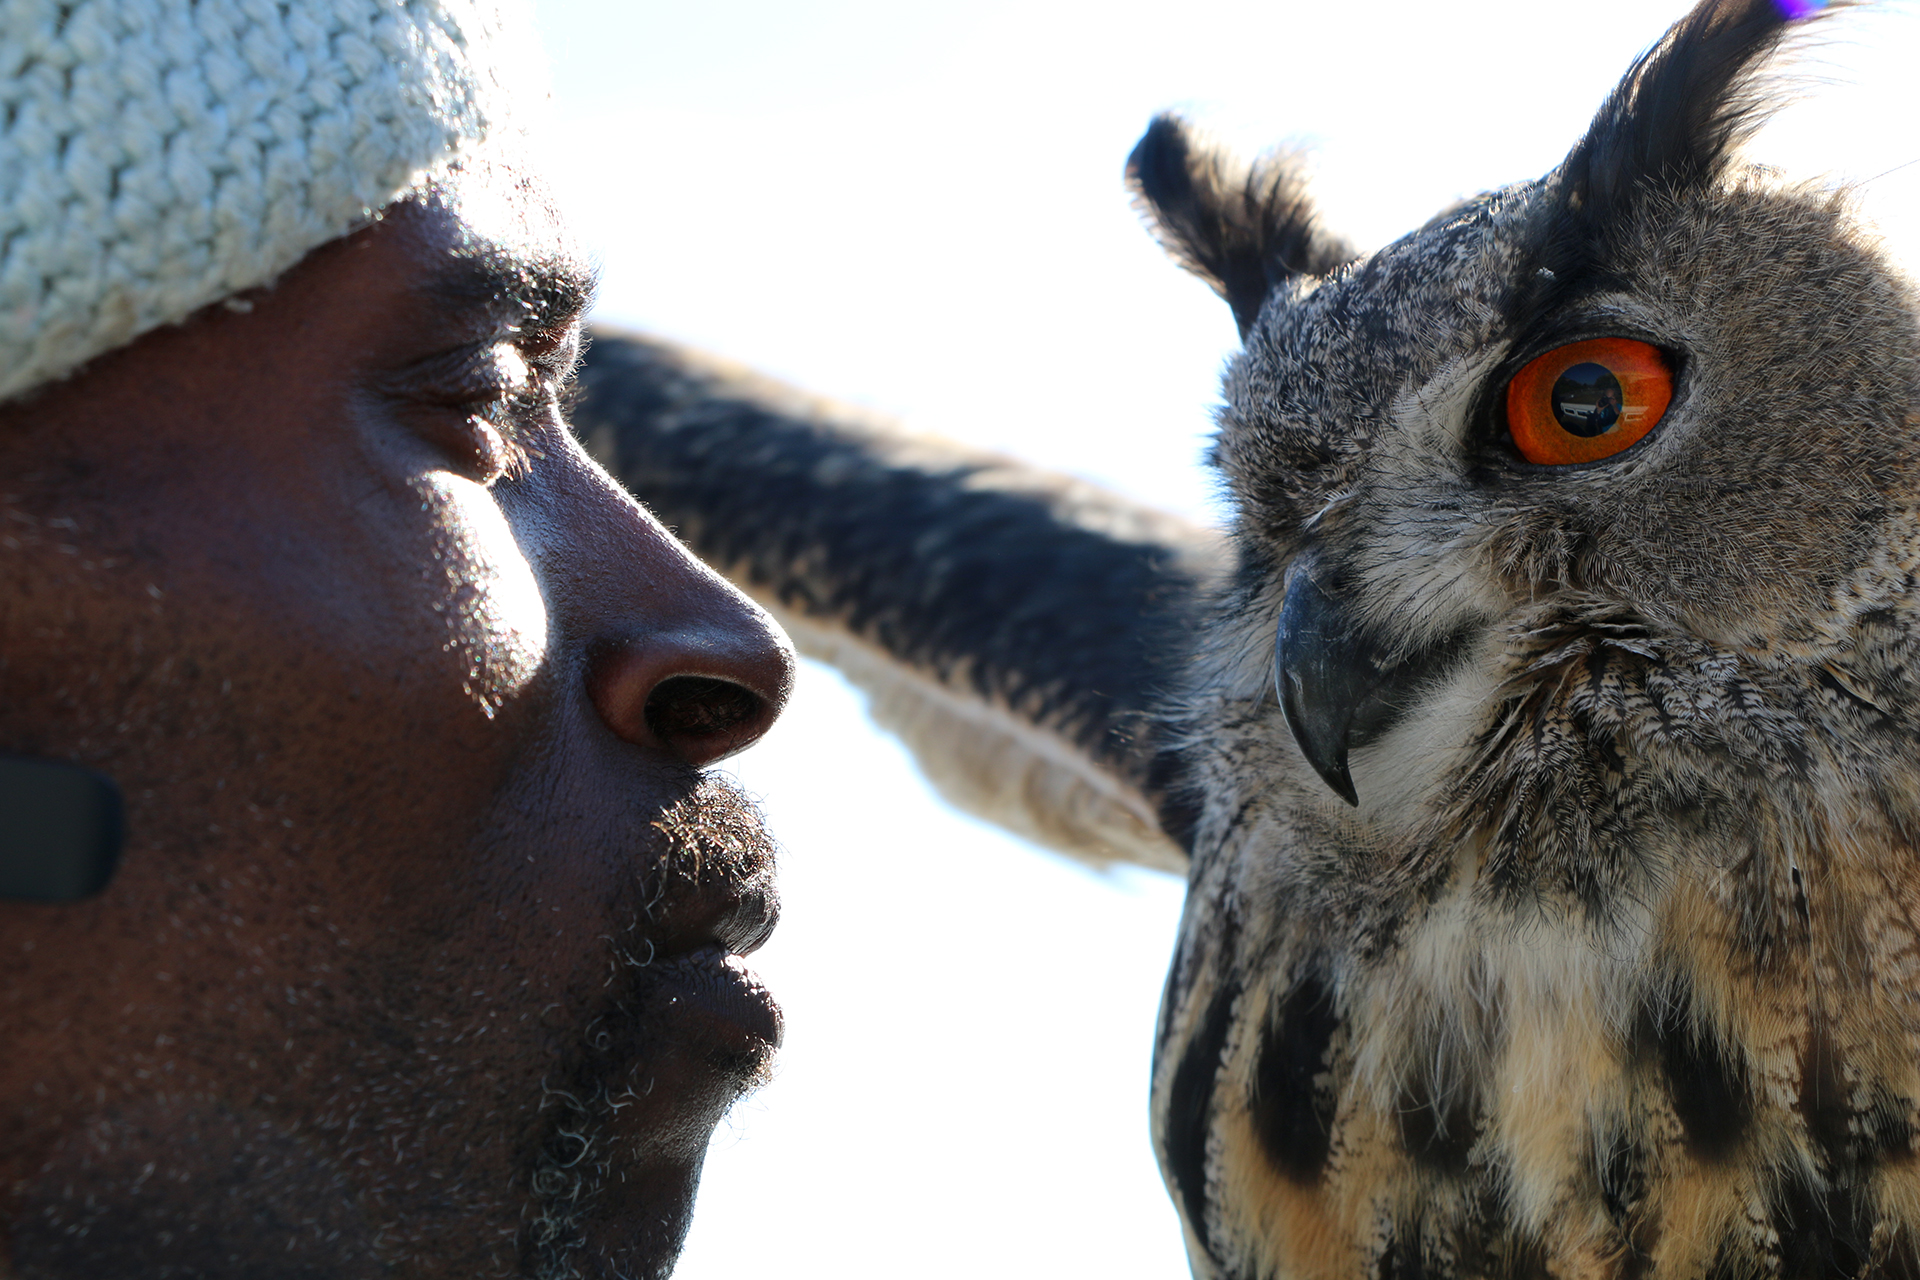 Caption: Mr. Hoots is a Eurasian eagle owl, and one of Rodney Stotts' favorite raptors., Credit: Ari Daniel